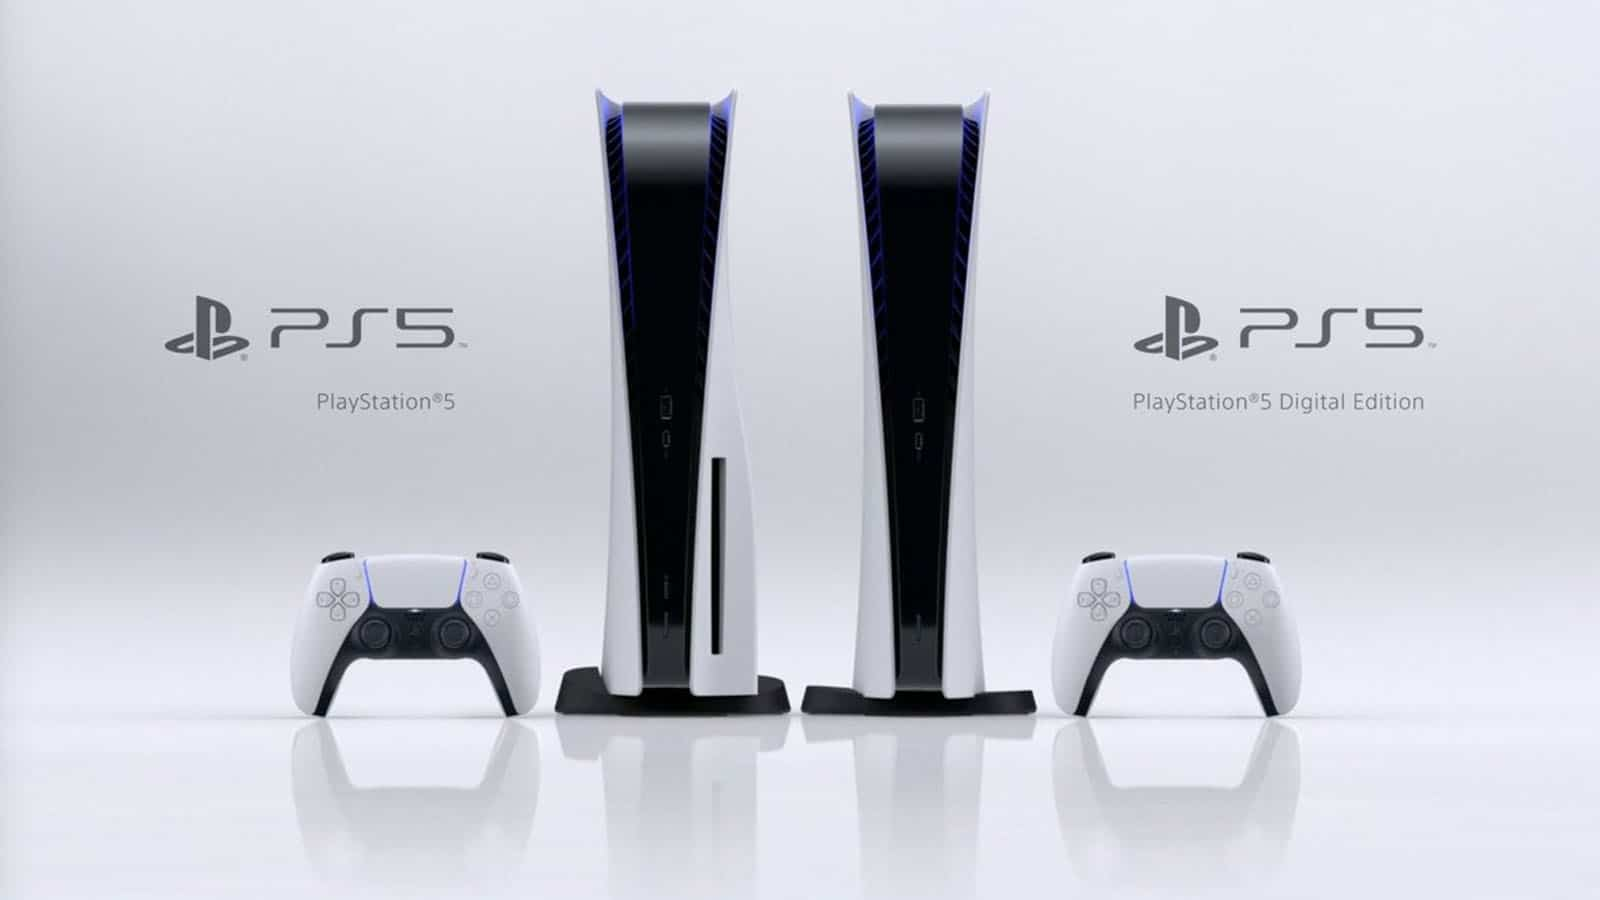 sony playstation 5 versions